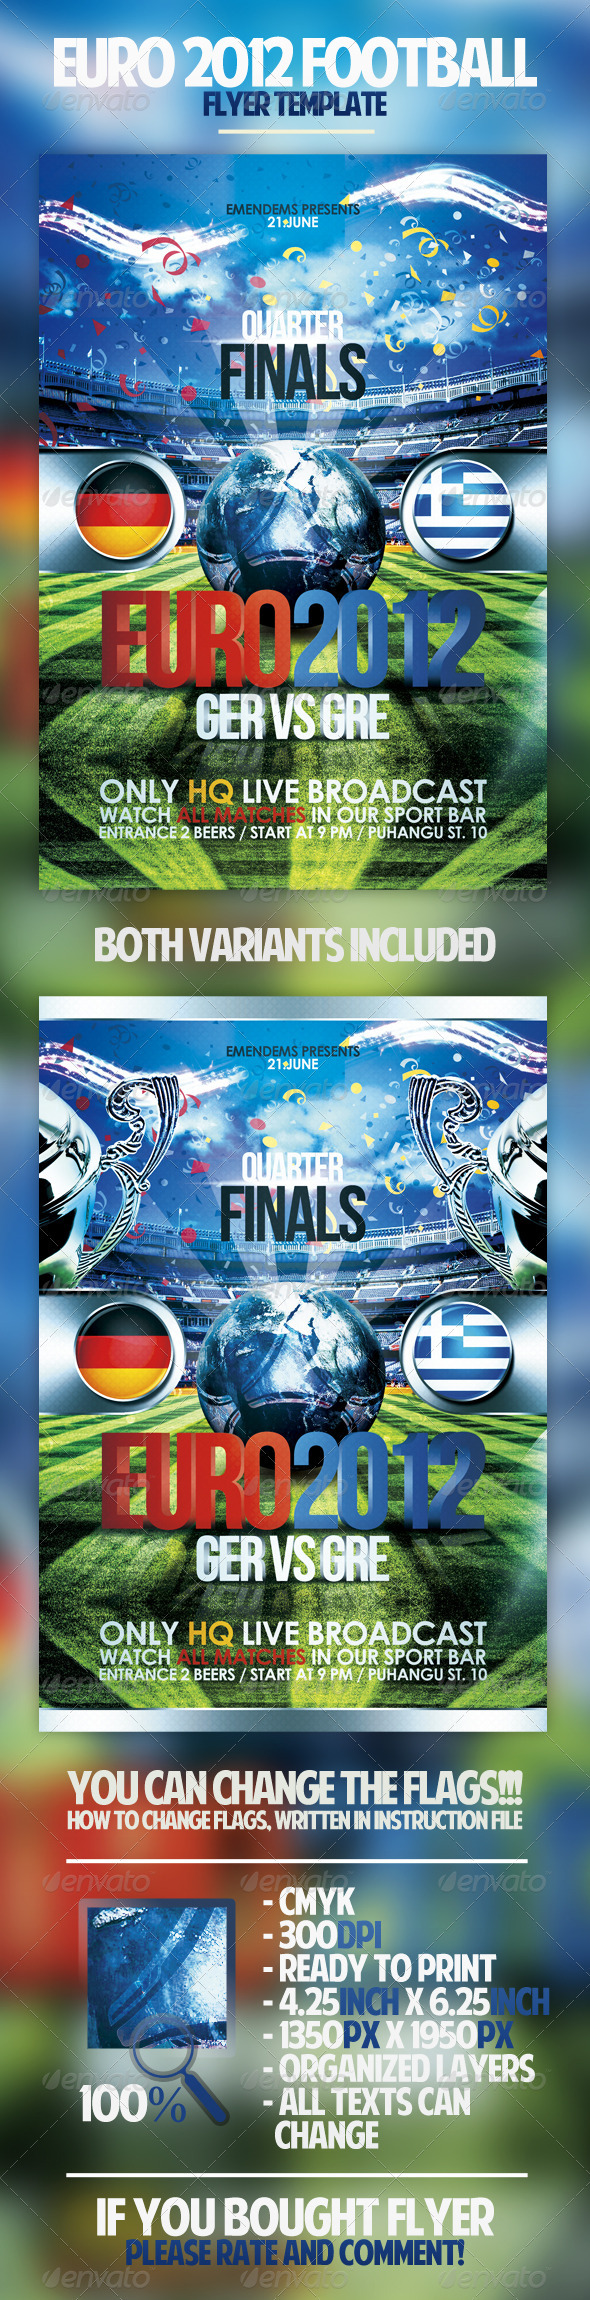 Euro 2012 Football Flyer - Sports Events